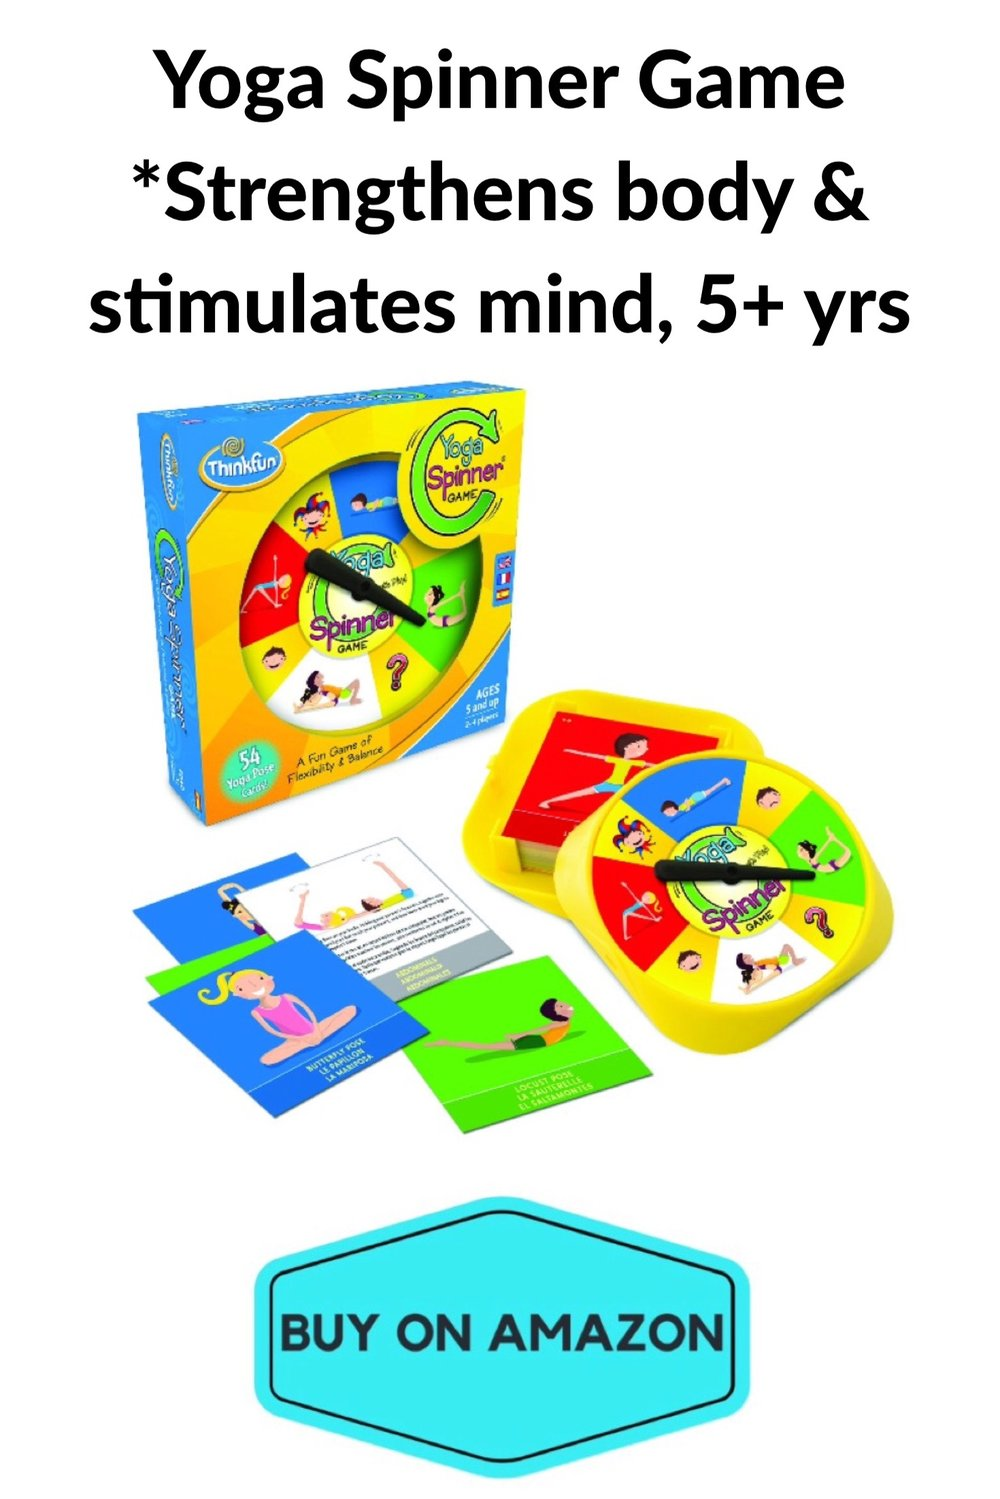 Yoga Spinner Game, Age 5+